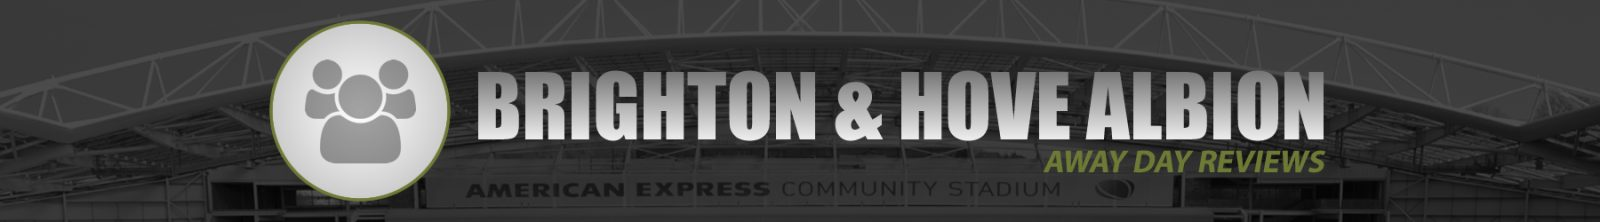 Review Brighton & Hove Albion